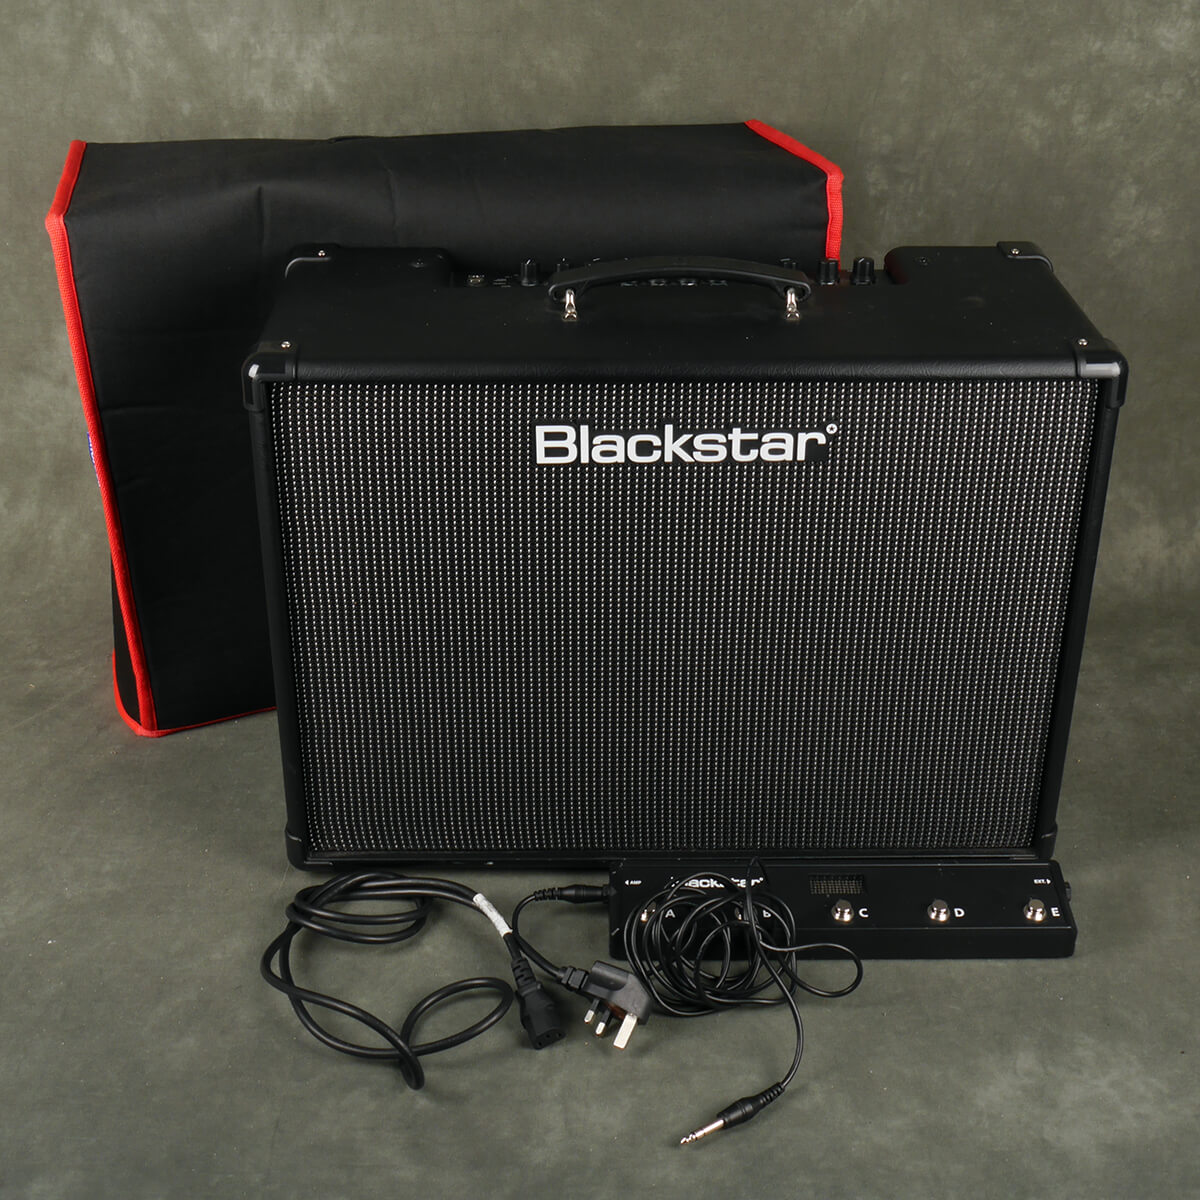 Blackstar ID Core Stereo 100 & Footswitch w/Cover - 2nd Hand